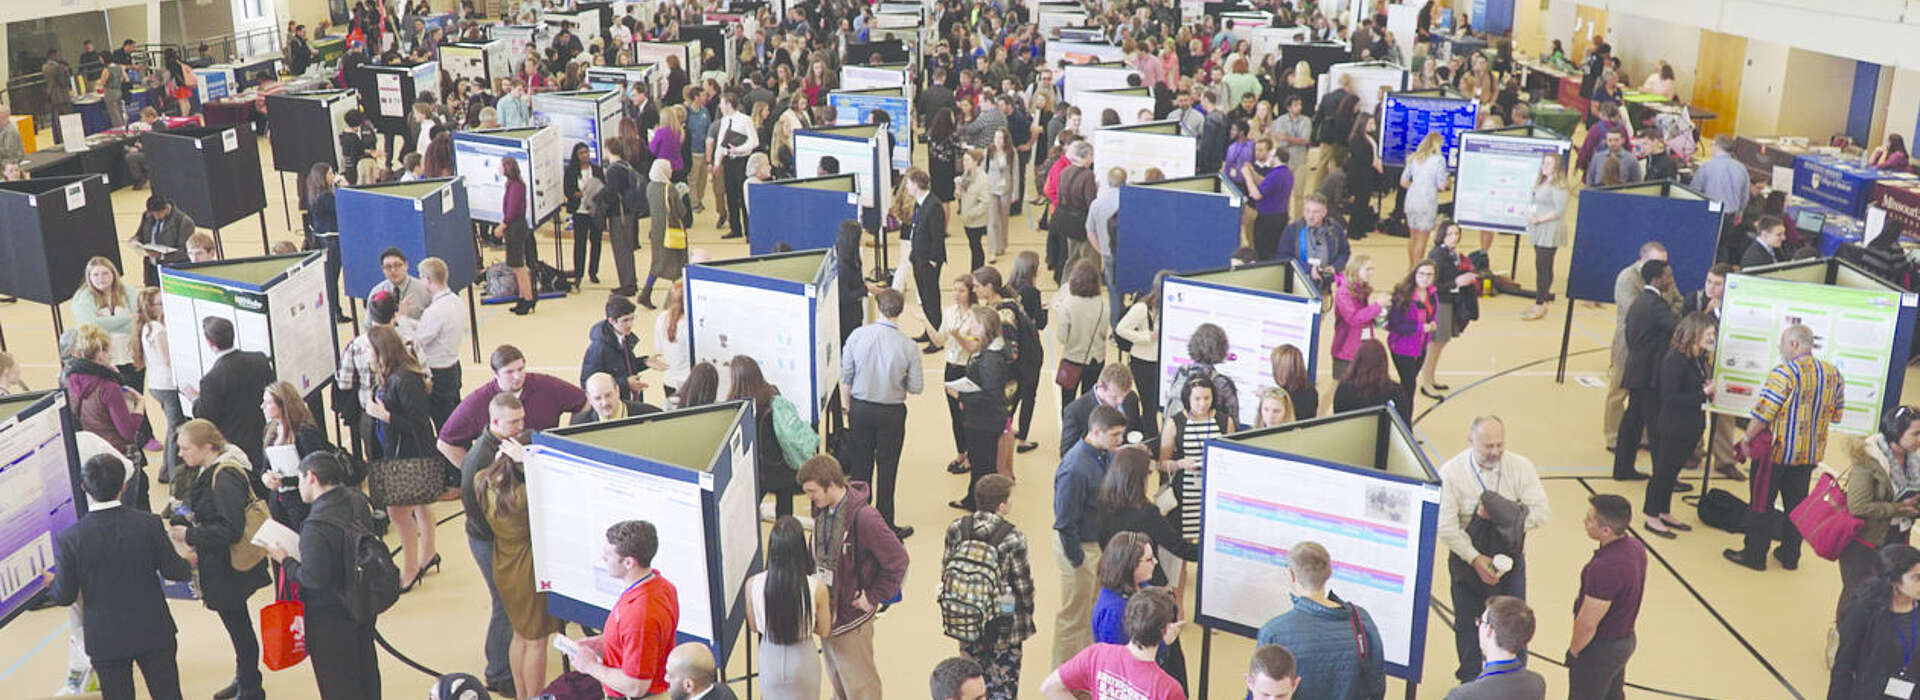 Hundreds of people reviewing large posters of research from above